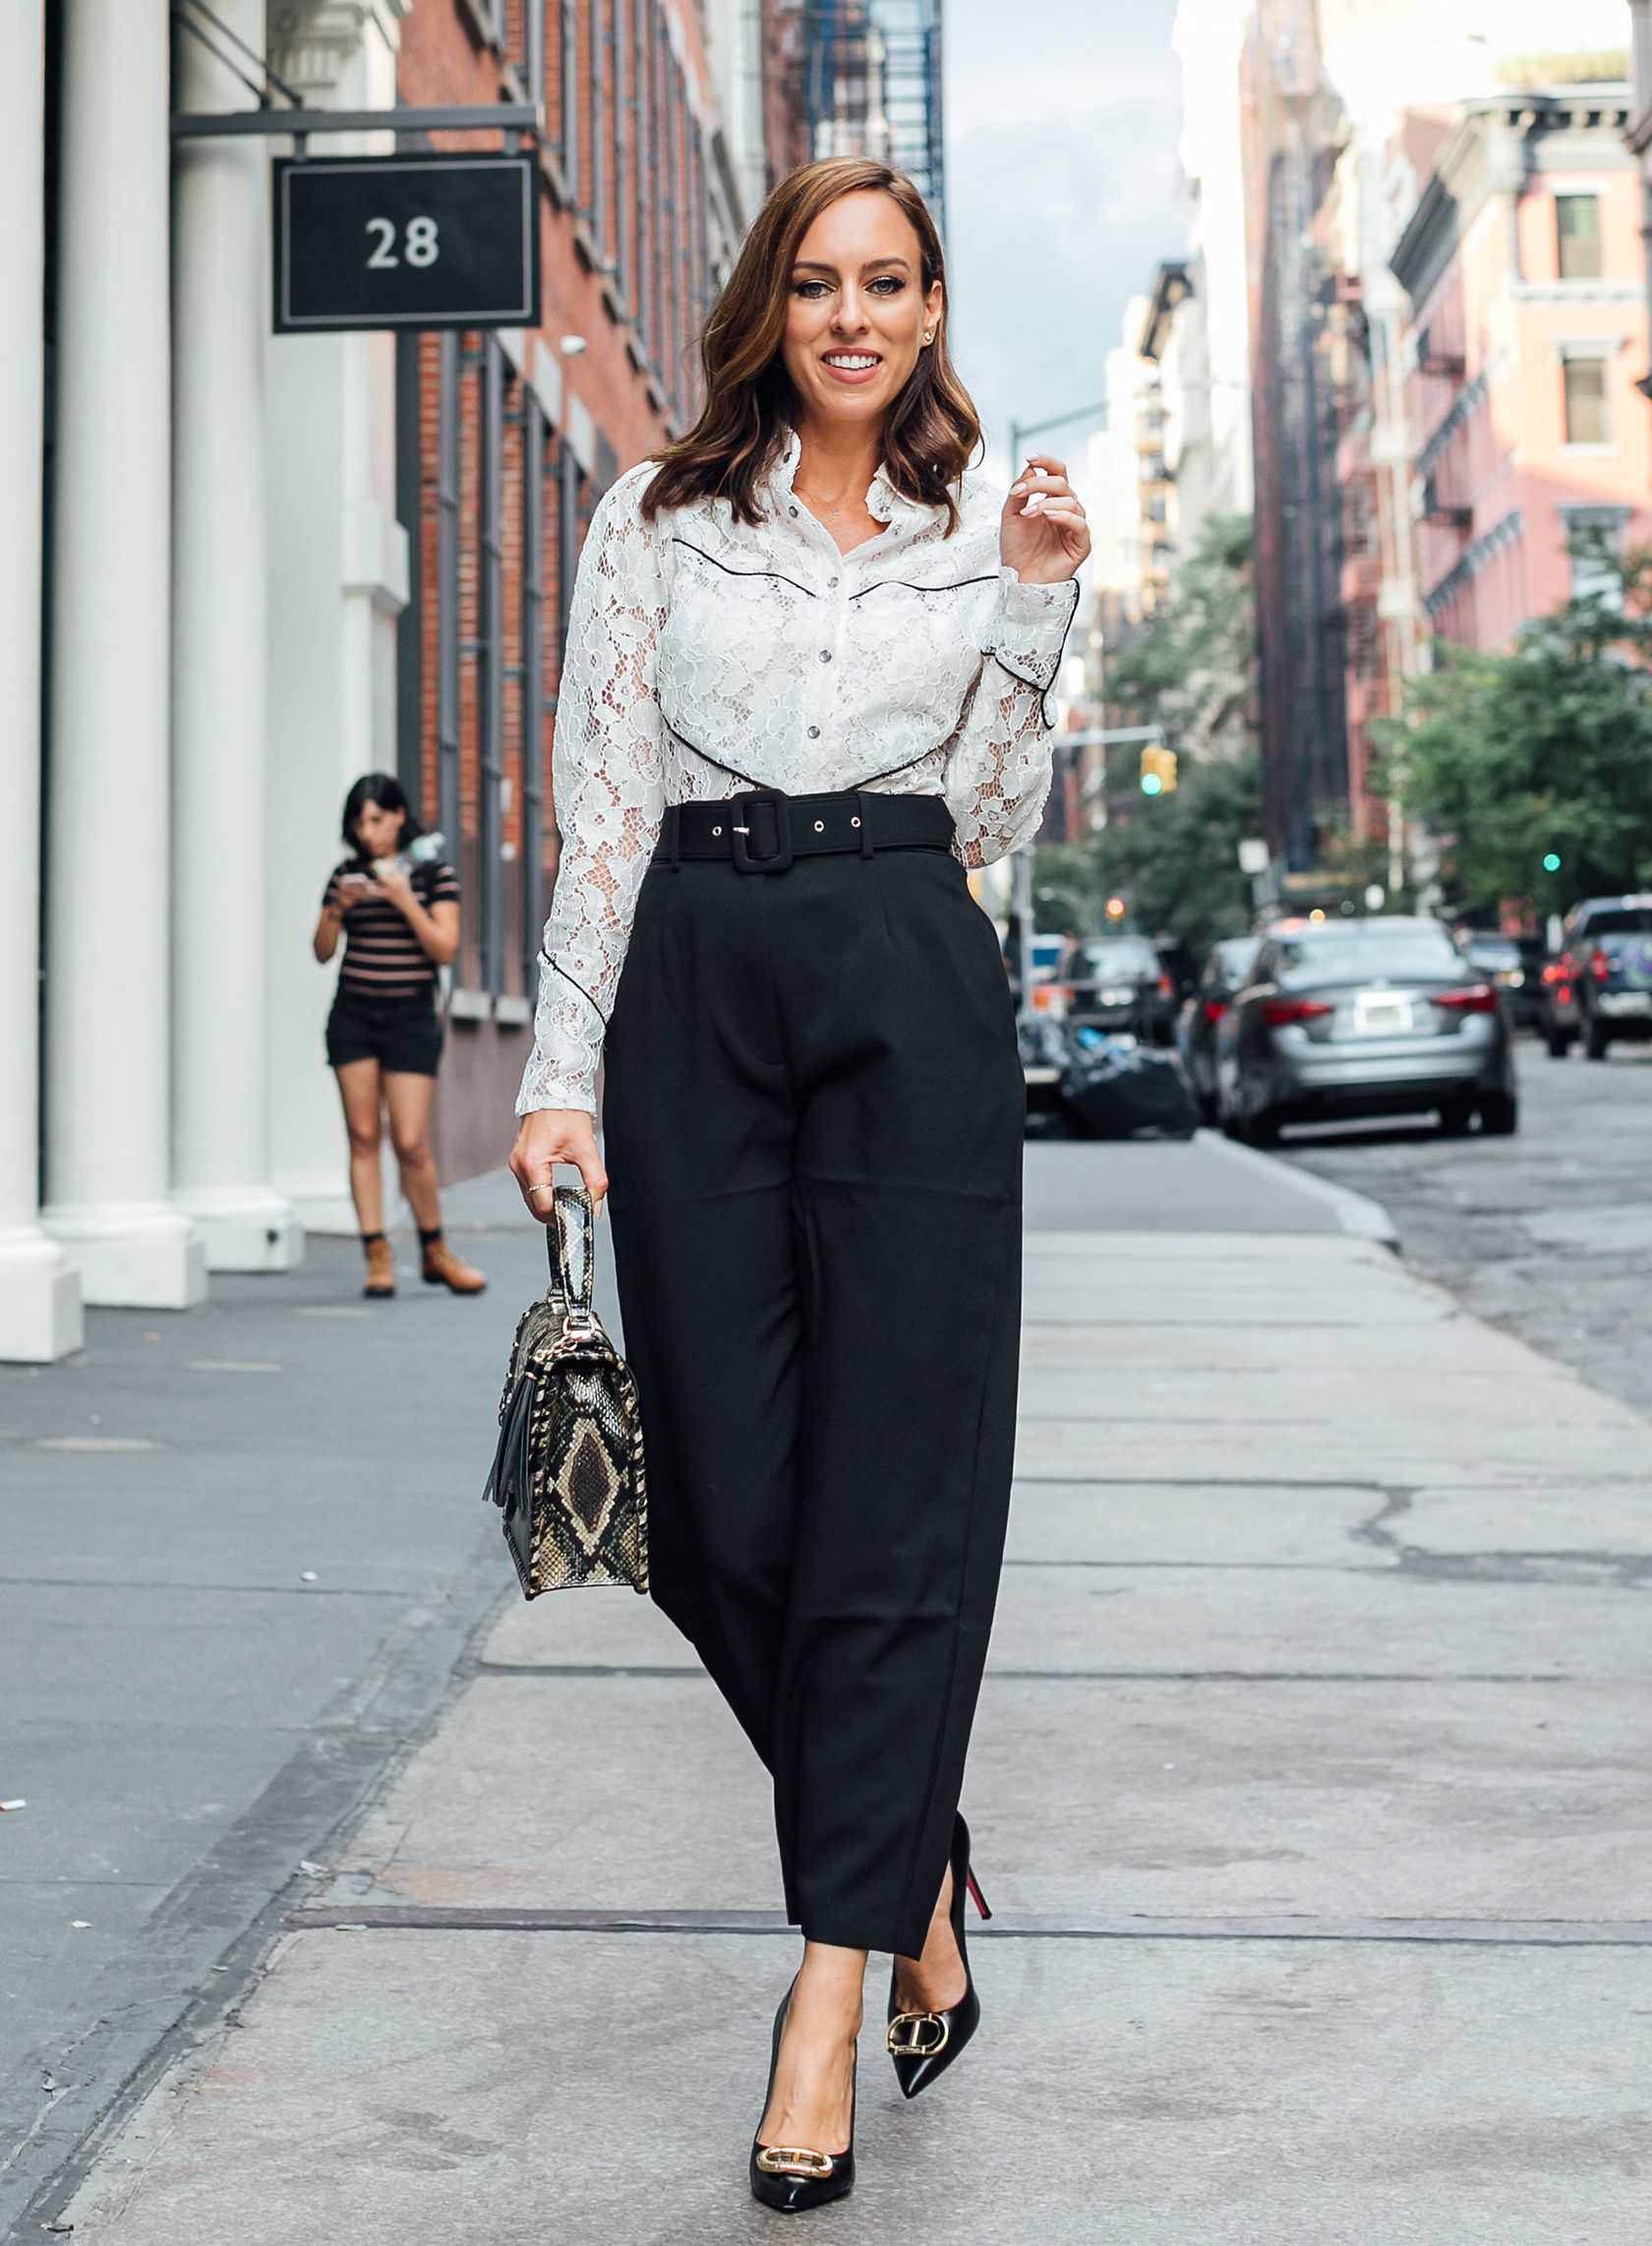 5f261174a1a9 Sydne Style shows office outfit ideas in white button shirts #western #fall  #officeoutfits @sydnesummer